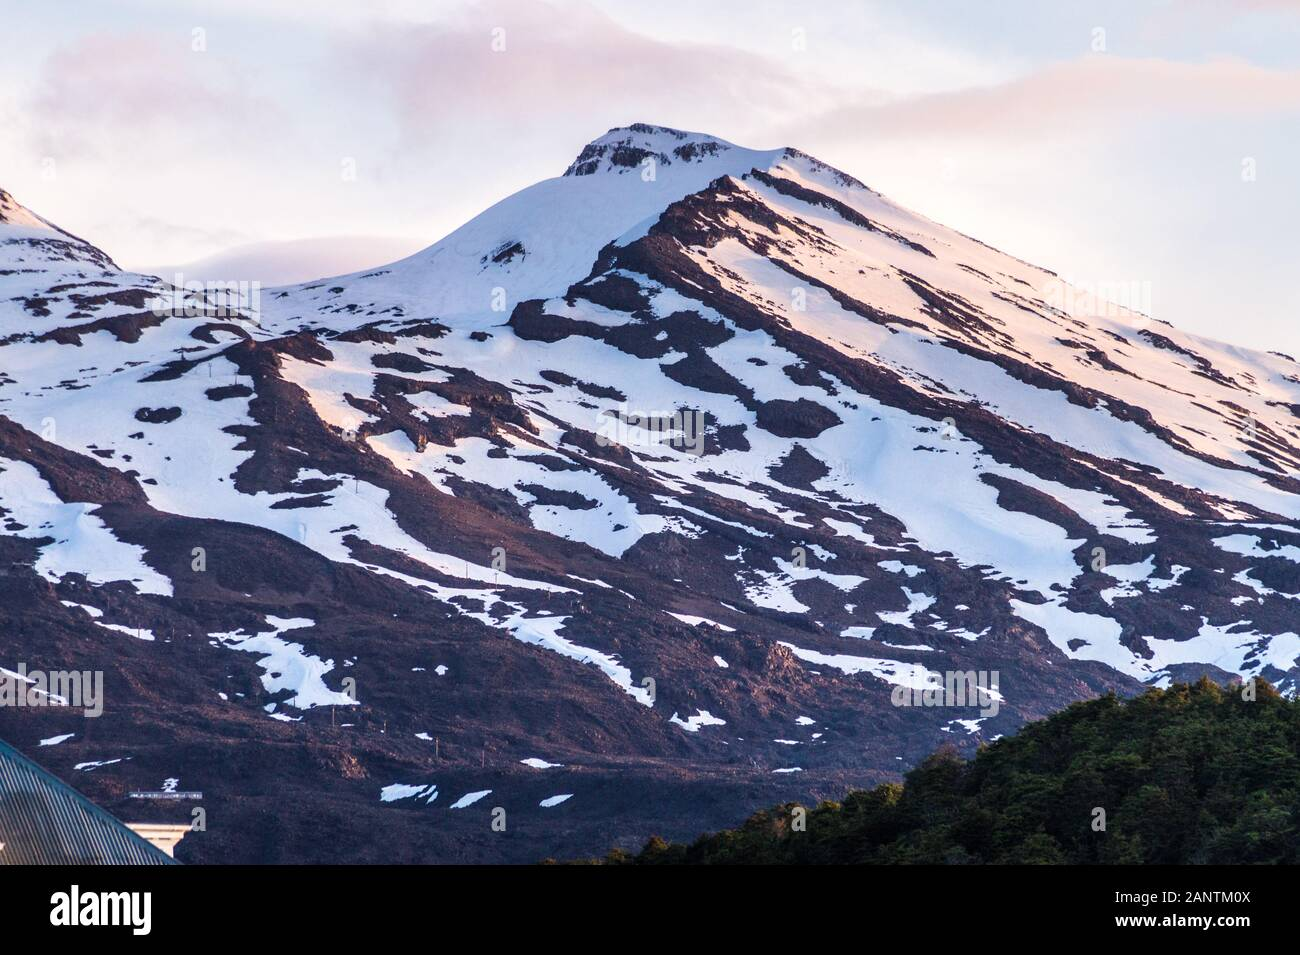 snow-on-mount-ruapehu-tongariro-national-park-north-island-new-zealand-2ANTM0X.jpg